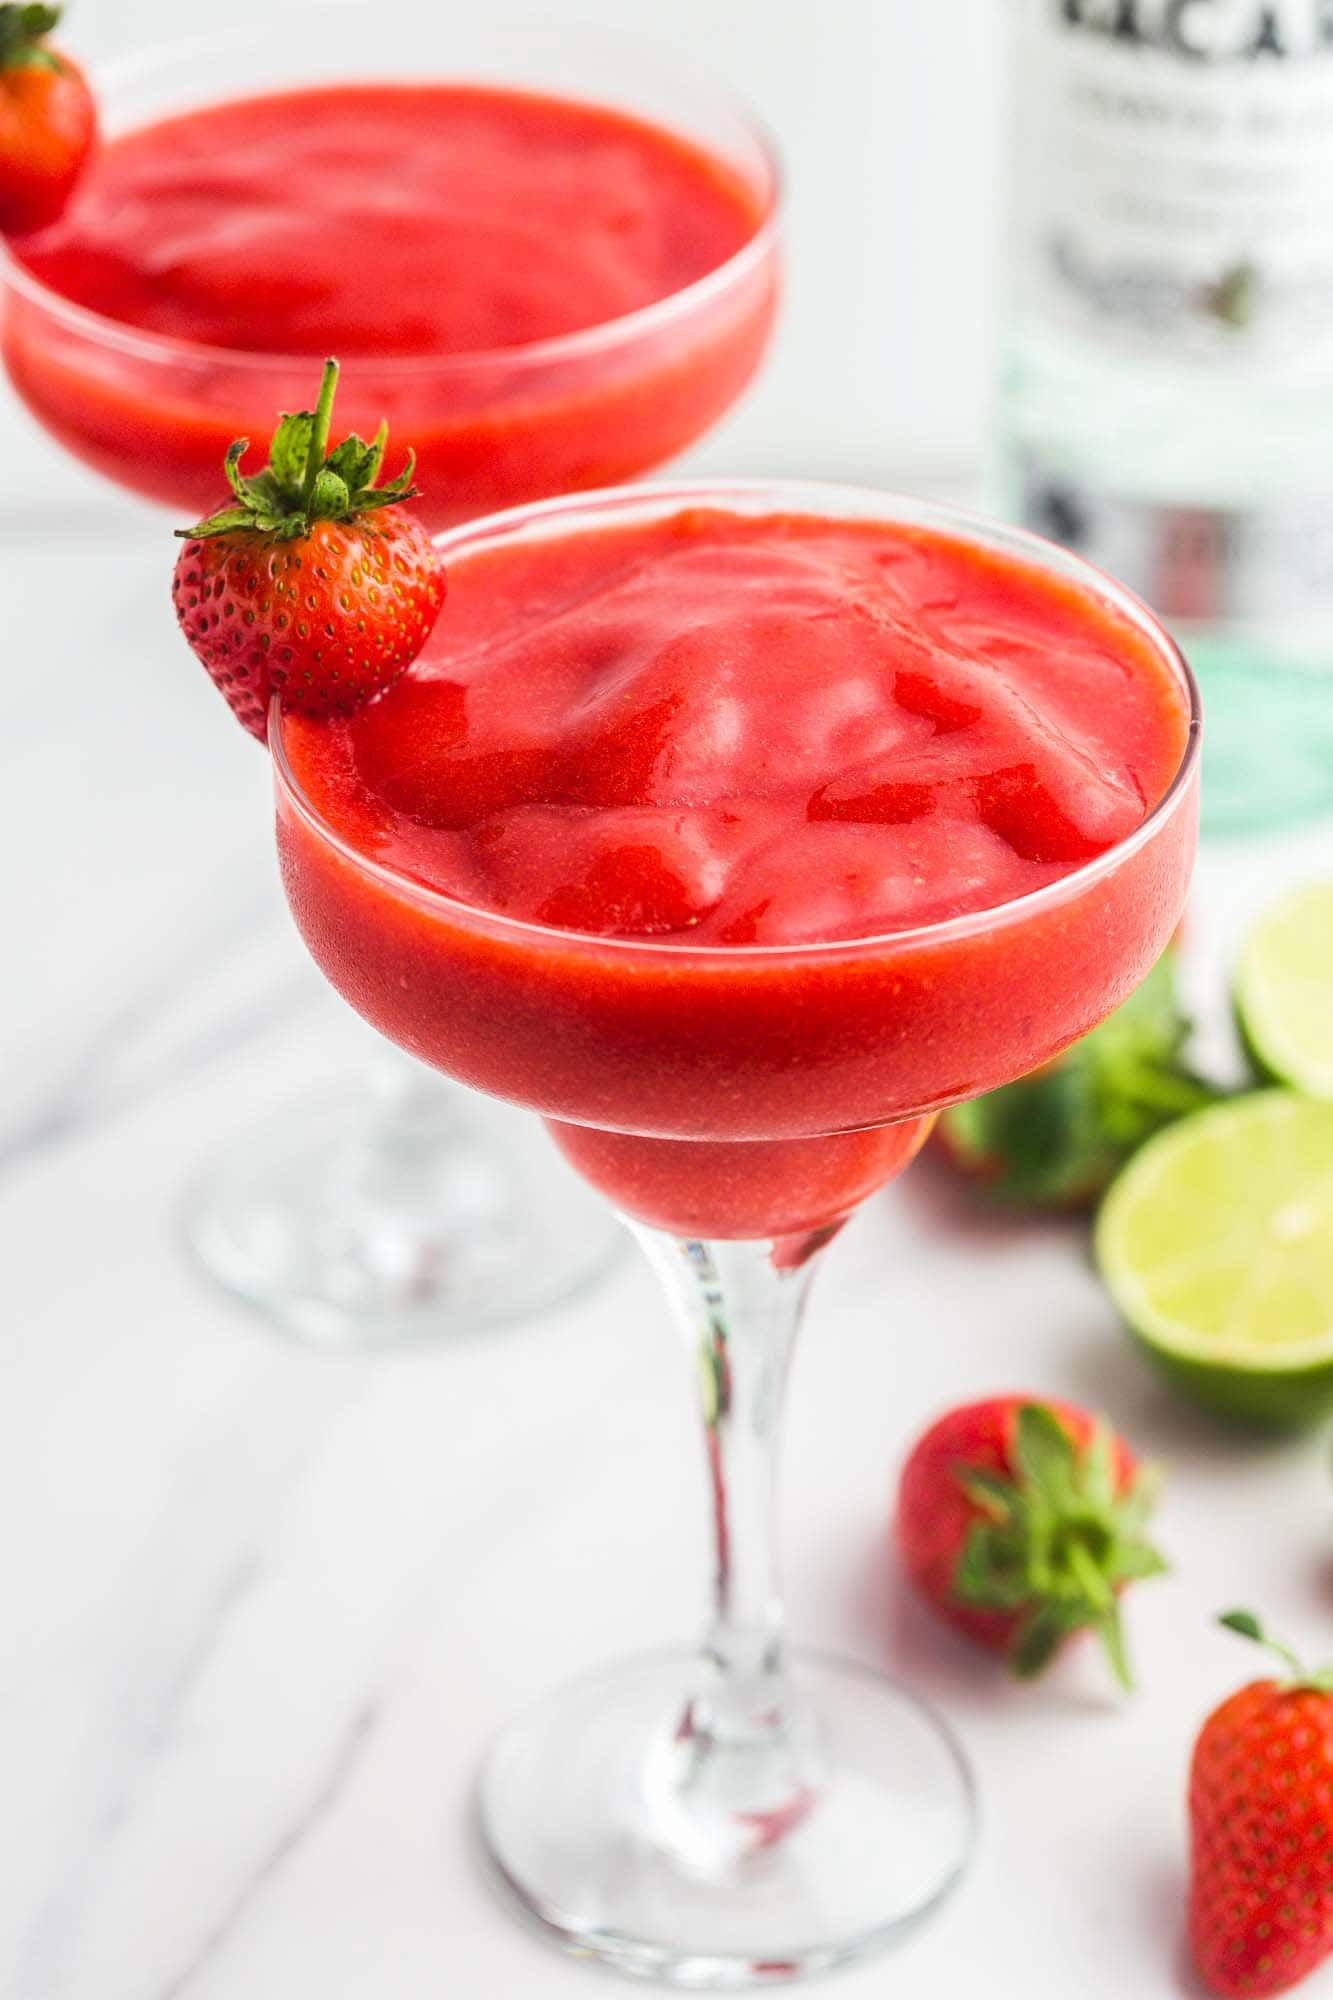 Strawberry Daiquiri in martini glasses, garnished with fresh strawberries. With a bottle of rum, fresh limes, and fresh strawberries in the background.